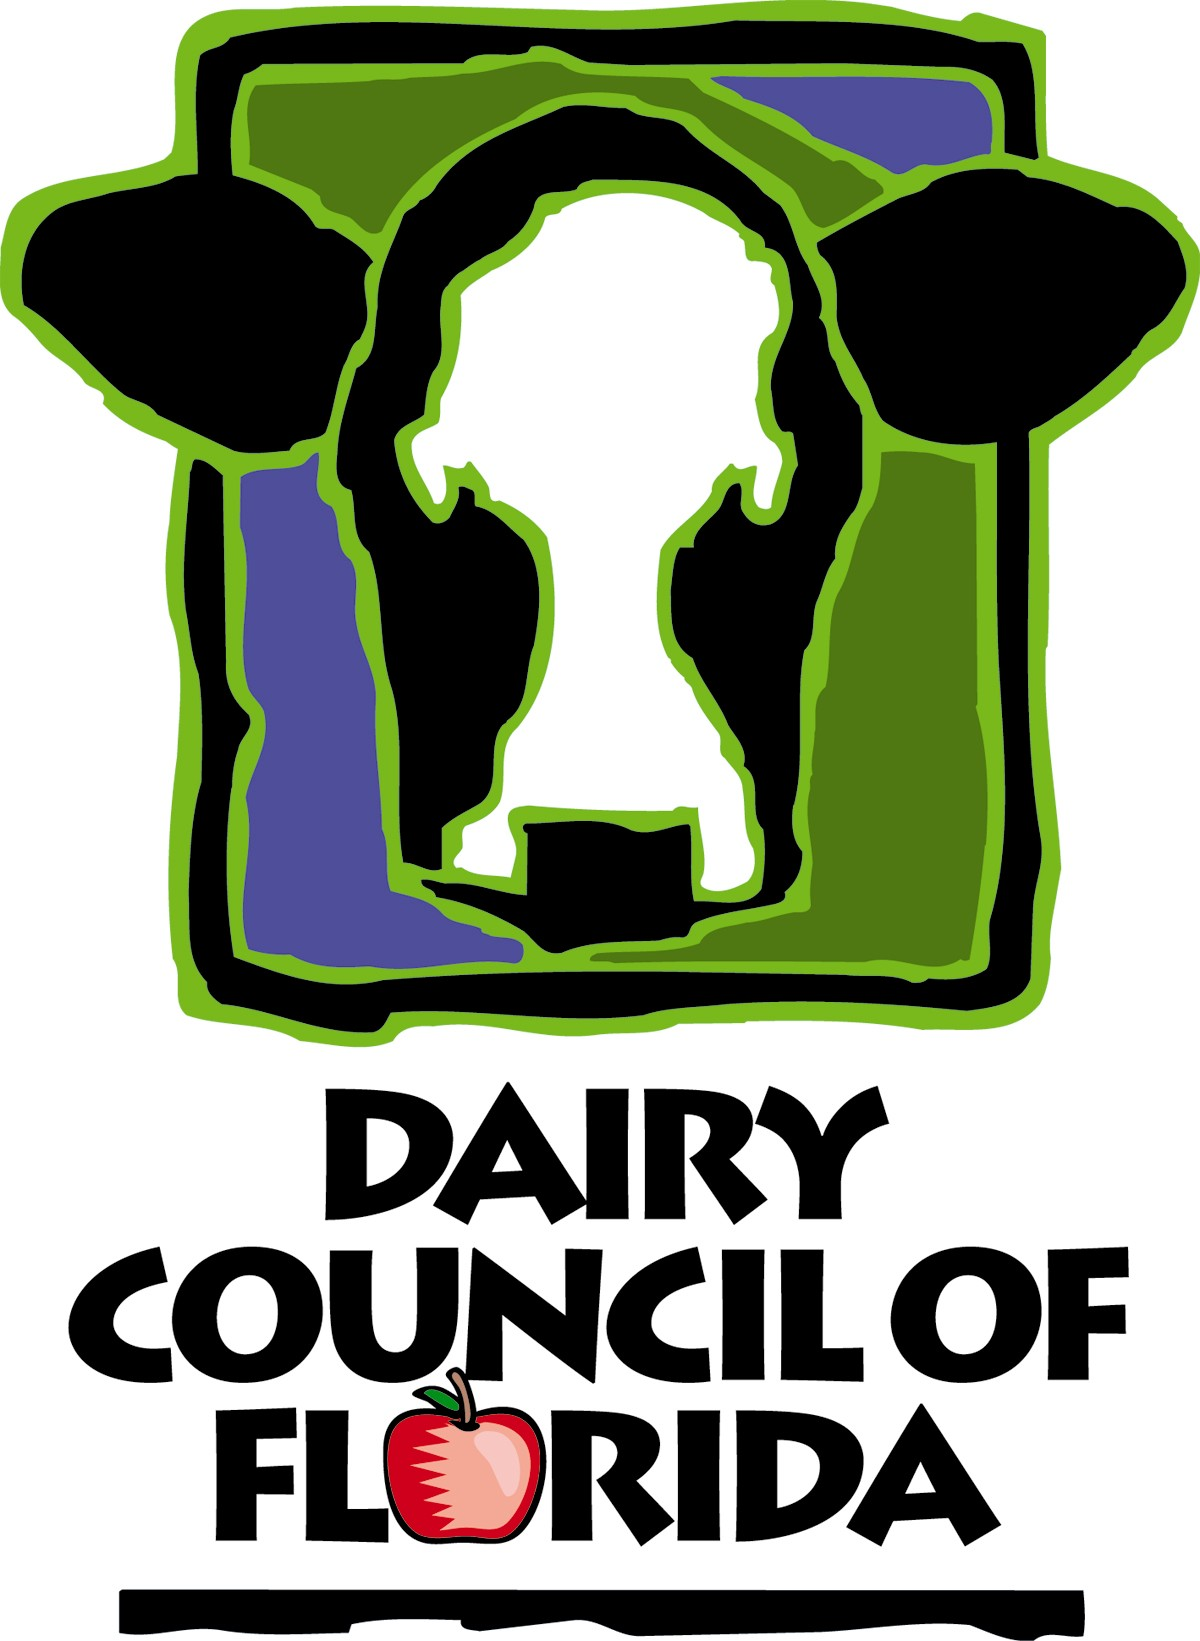 Dairy Council of Florida.jpg